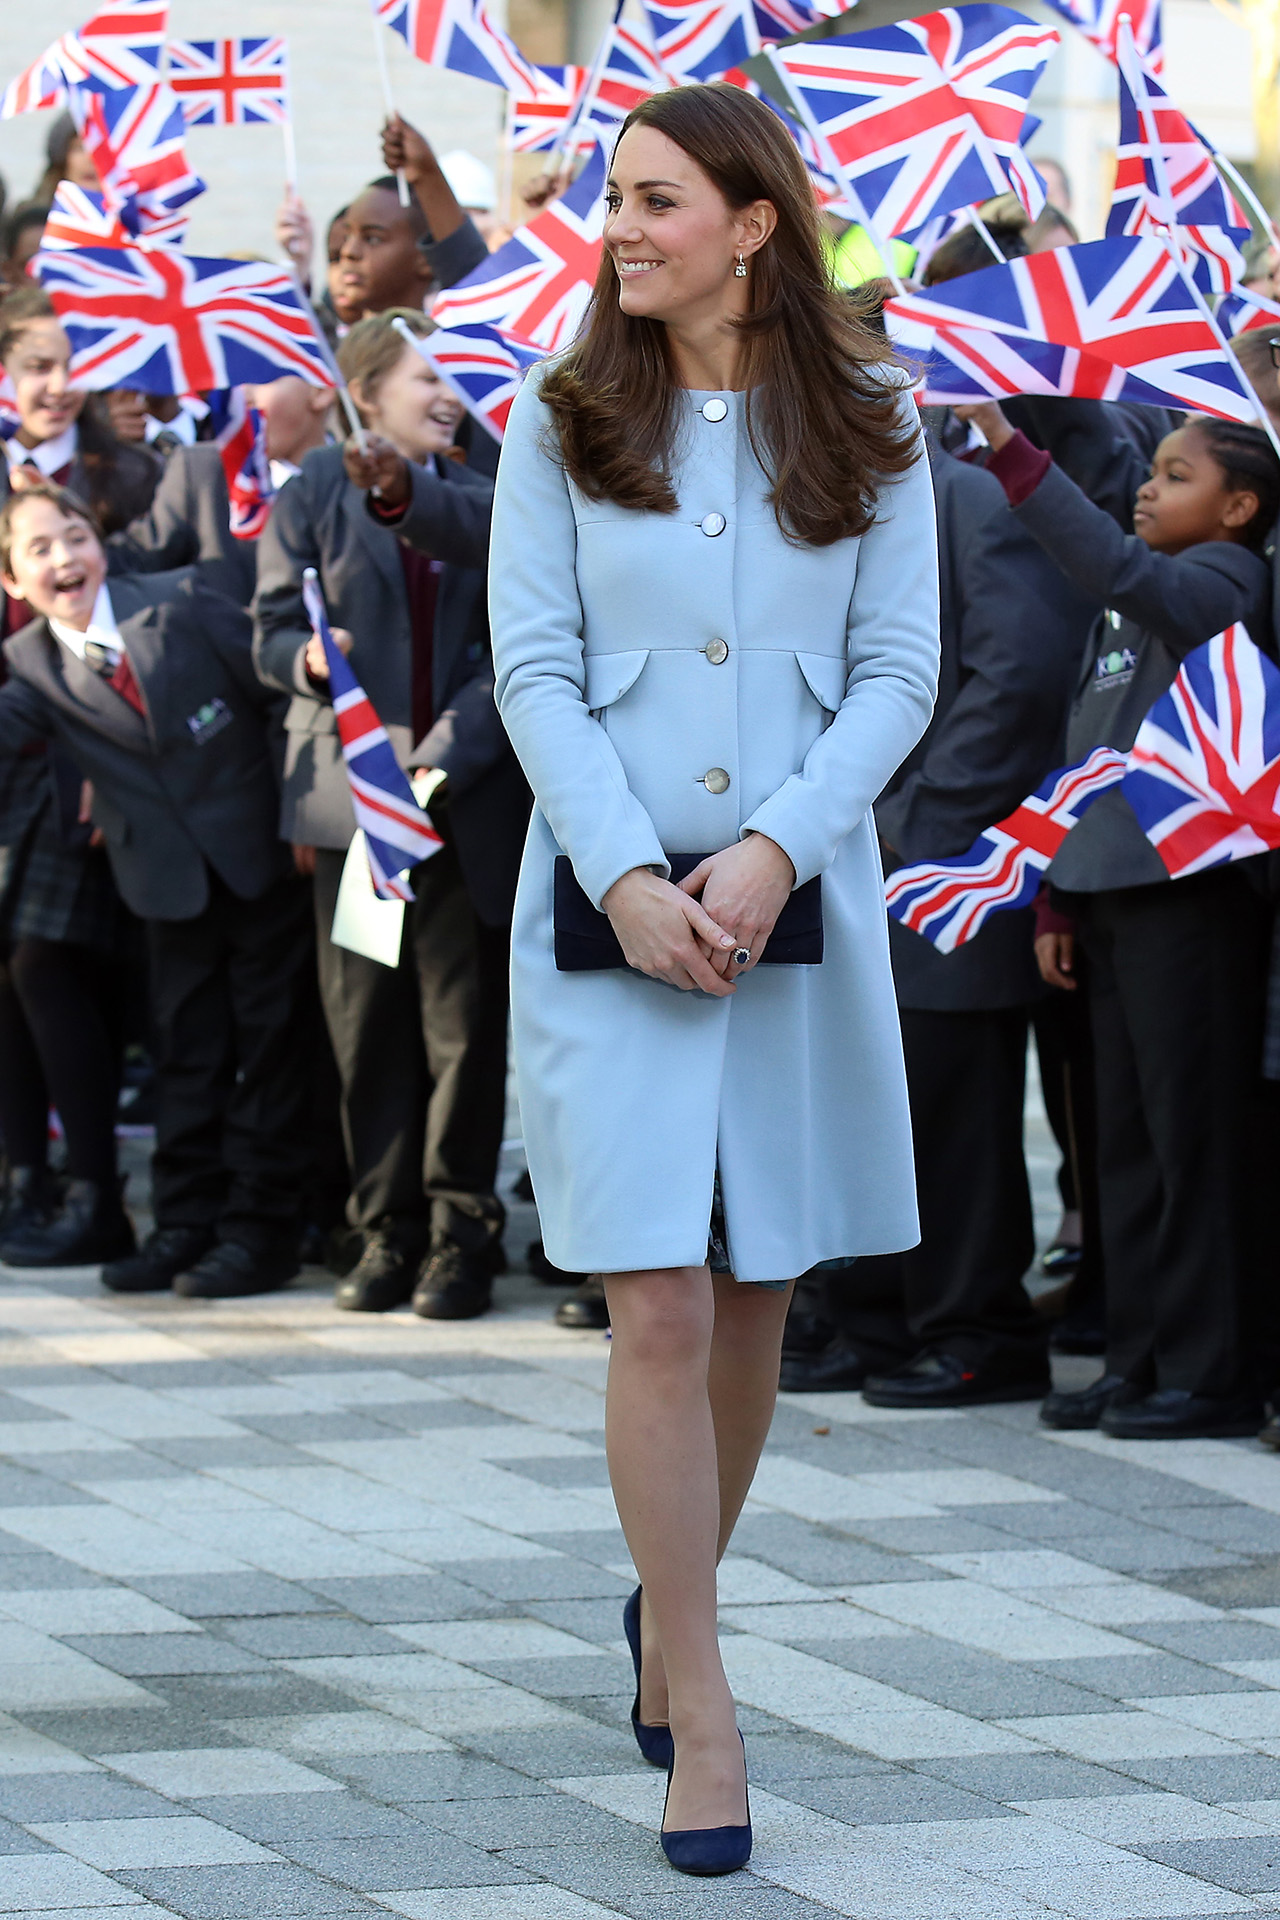 The Duchess Of Cambridge Opens The Kensington Leisure Centre And Aldridge Academy